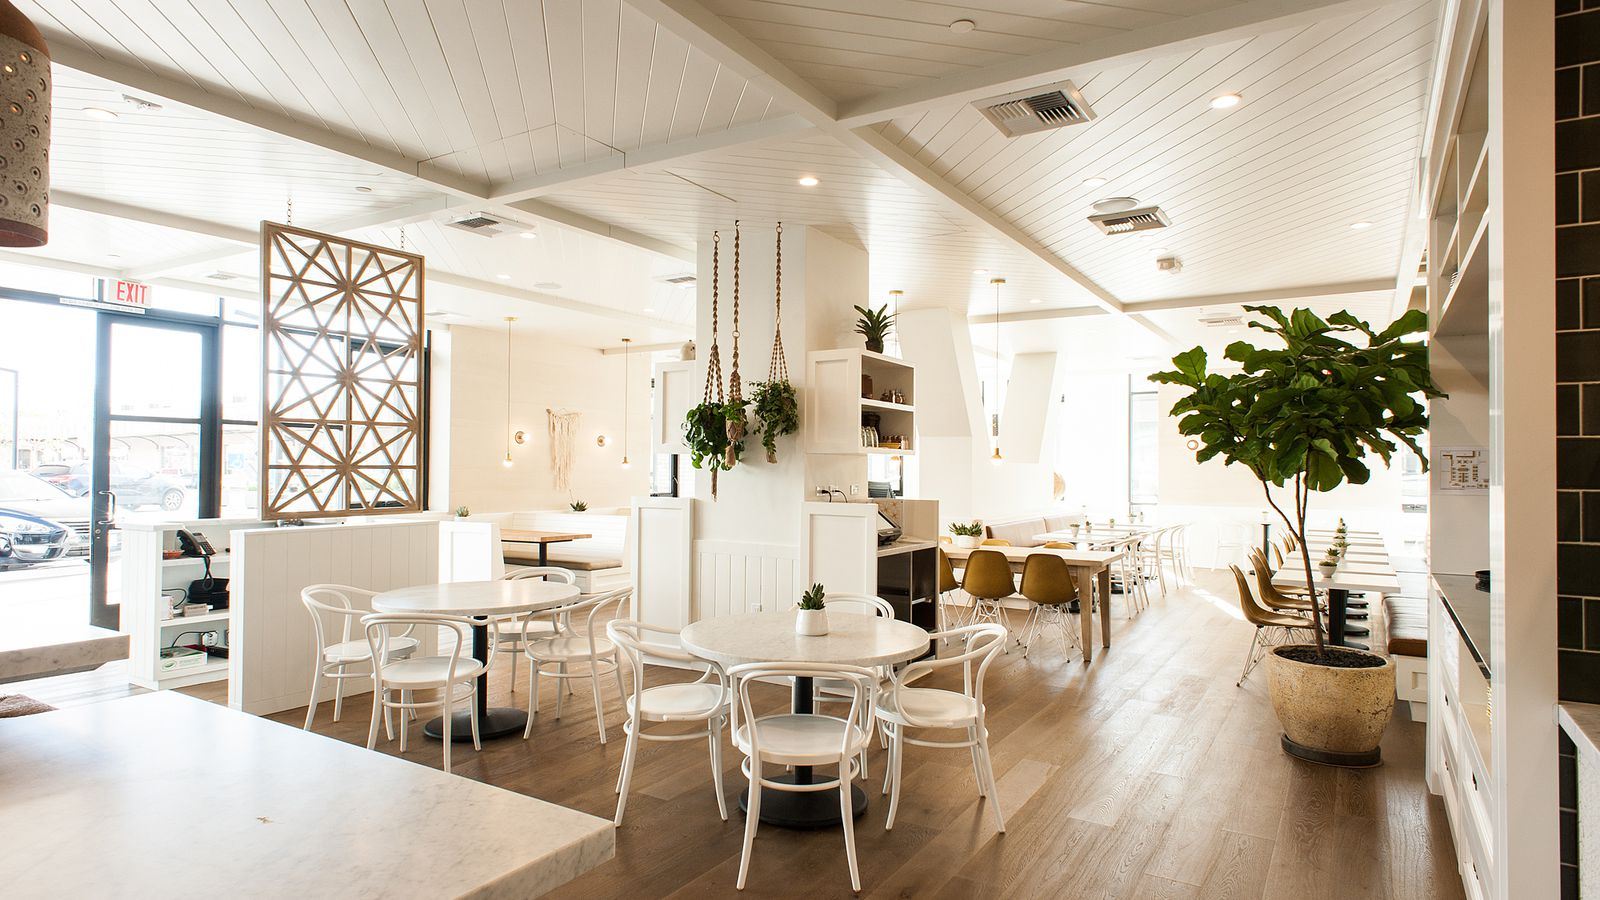 Cafe Gratitude A Sunny All Day Vegan Eatery In The New